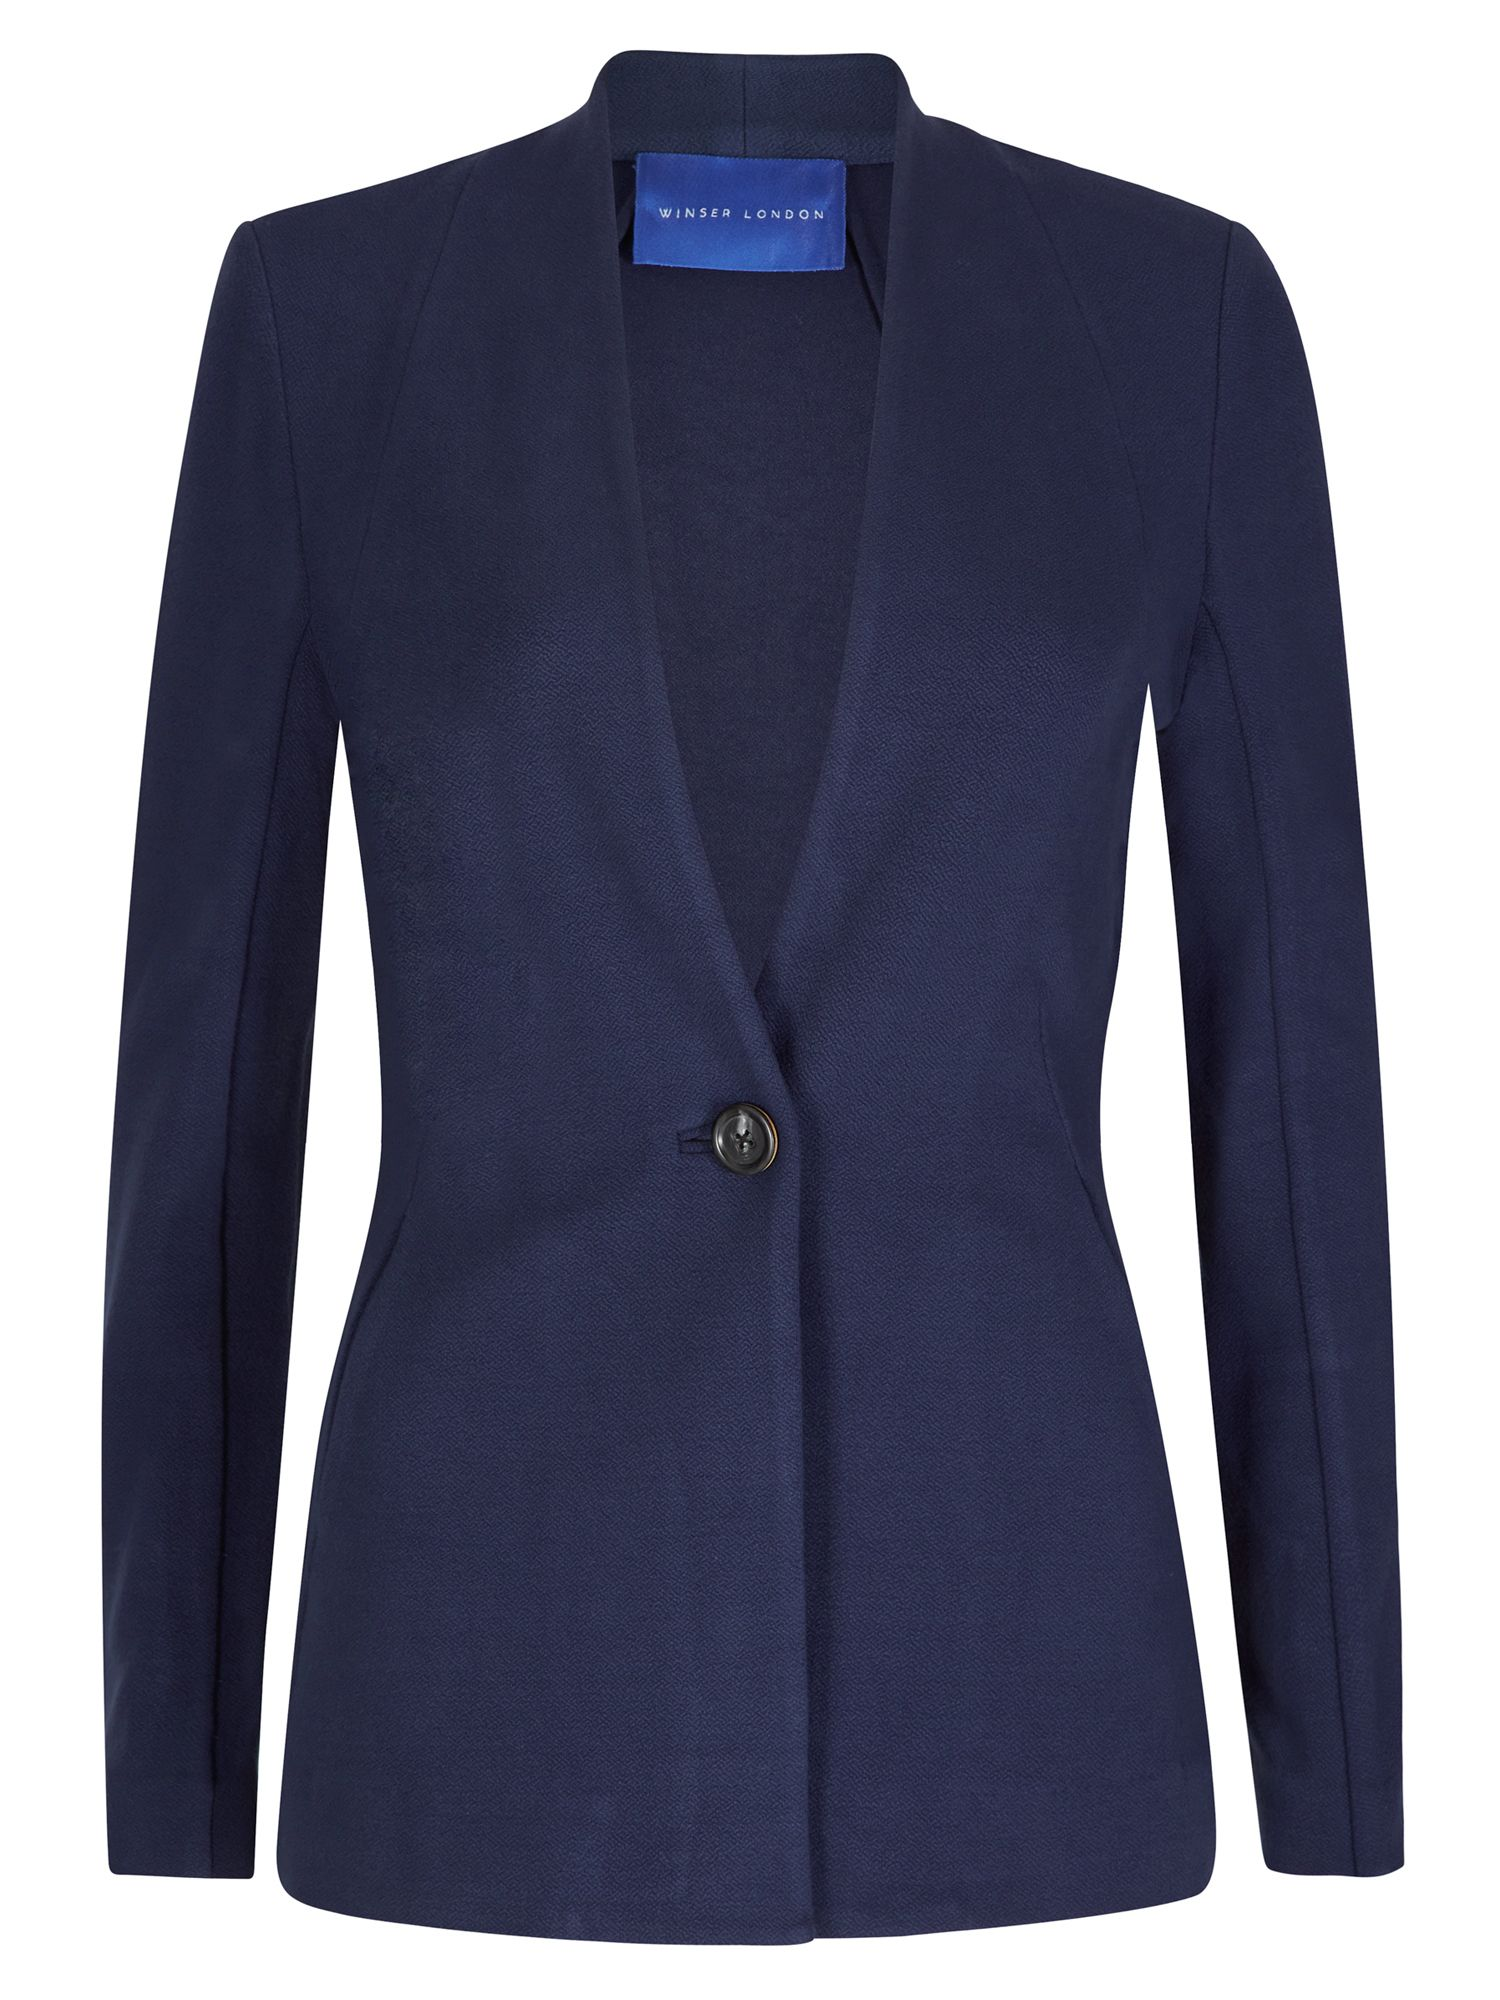 Winser London Crepe Jersey Jacket, Blue